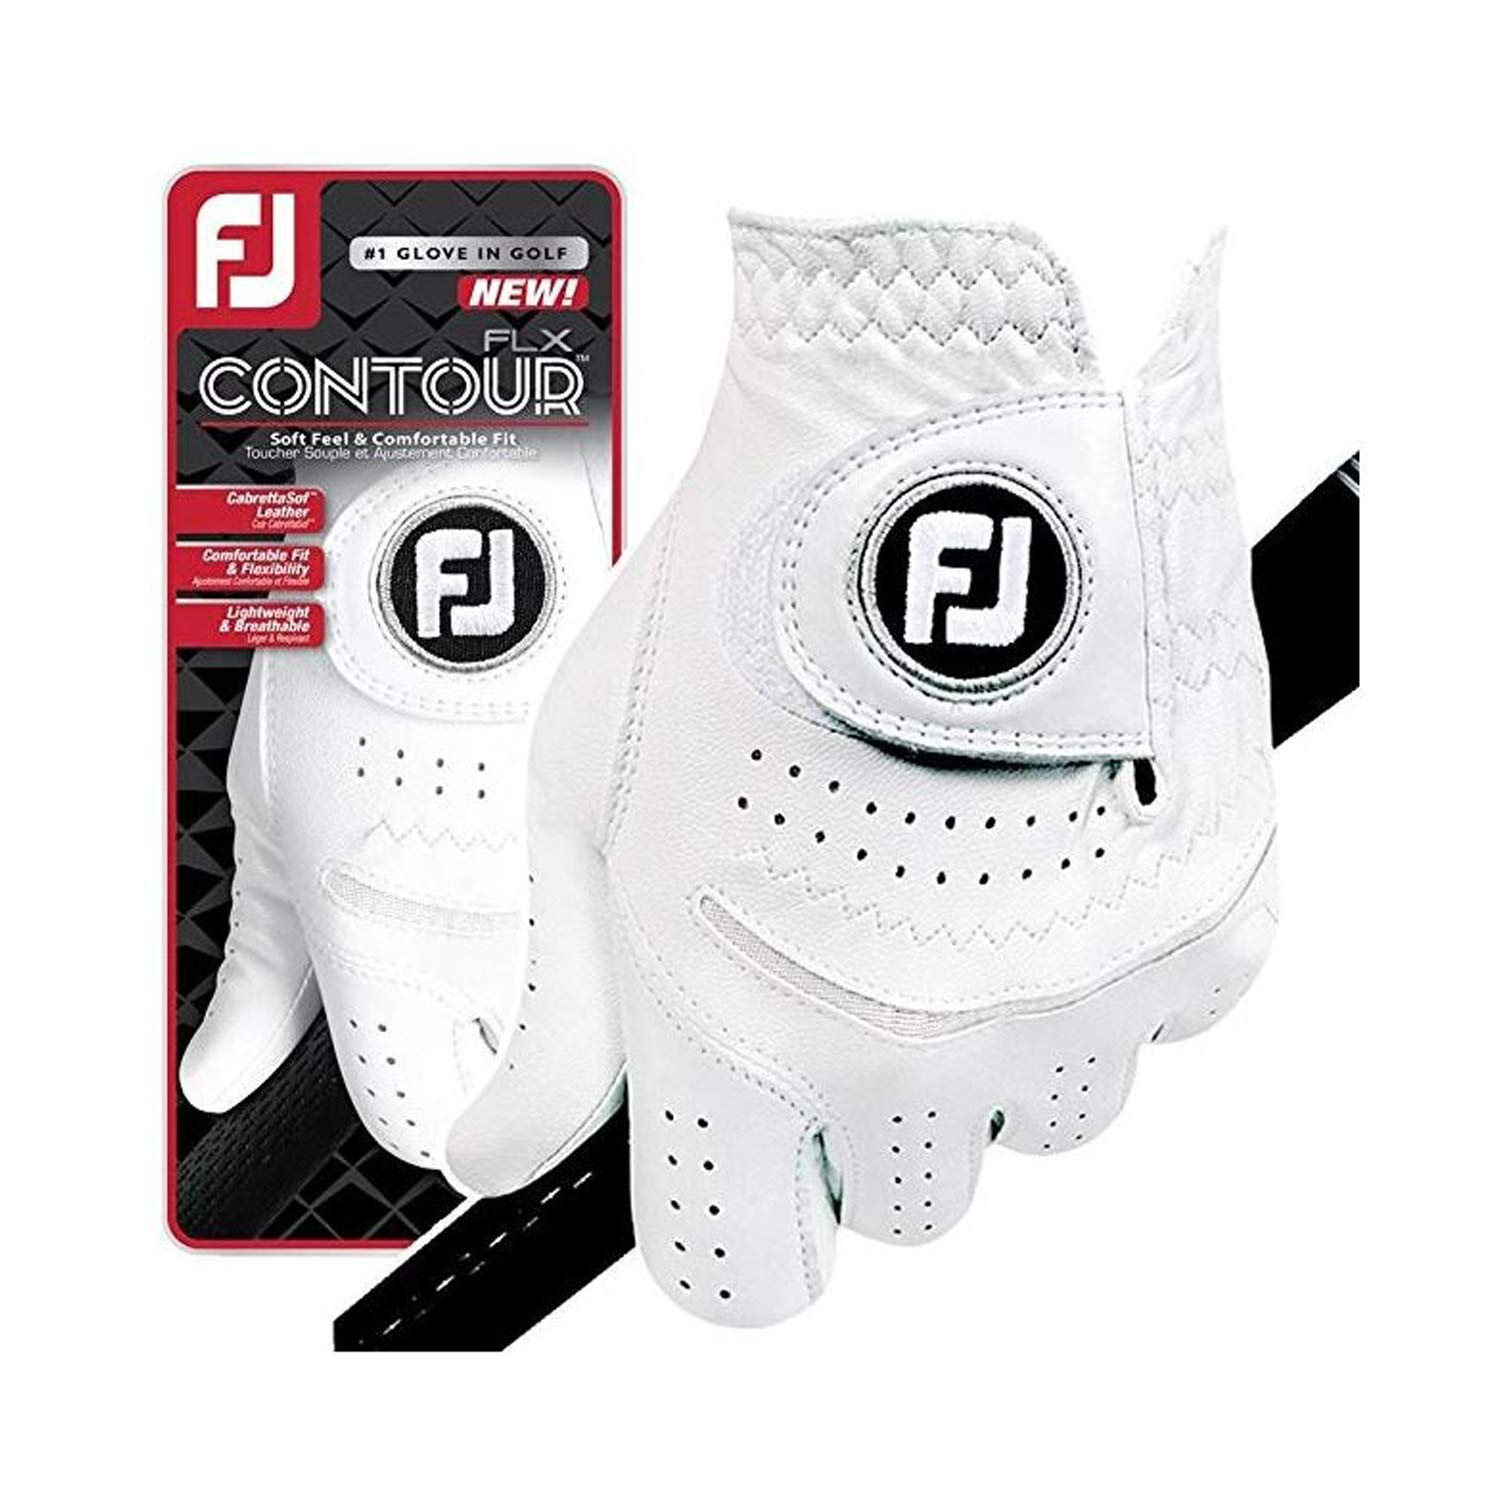 FootJoy New Contour FLX Flex Men's Premium Golf Glove w/CabrettaSof Leather #1 Glove in Golf (Small 6 Pack-Master Carton, Worn on Left Hand)